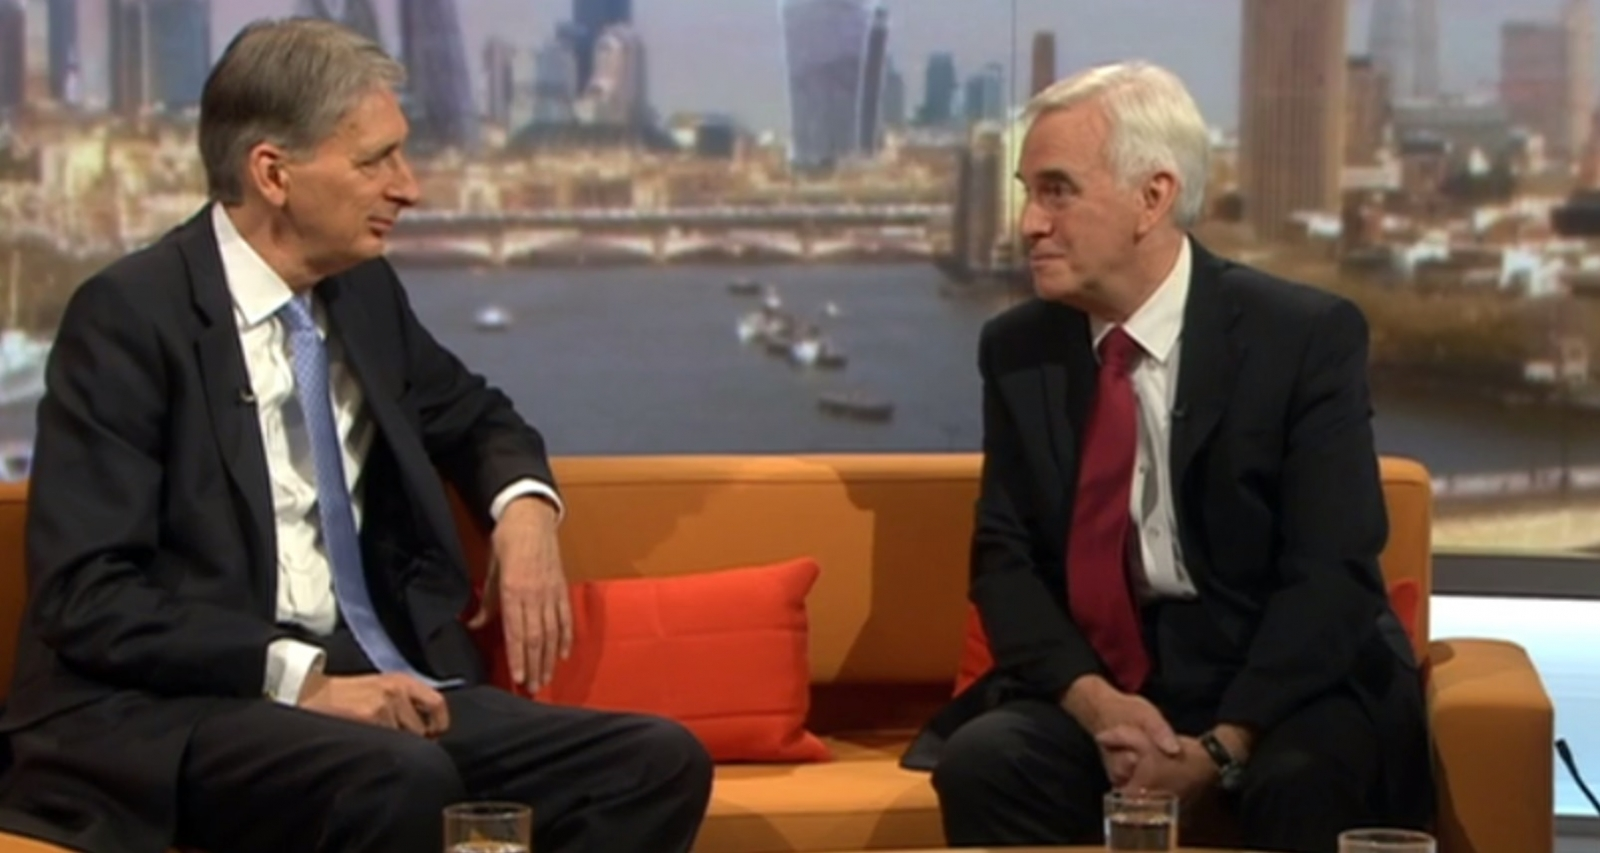 Philip Hammond and John McDonnell